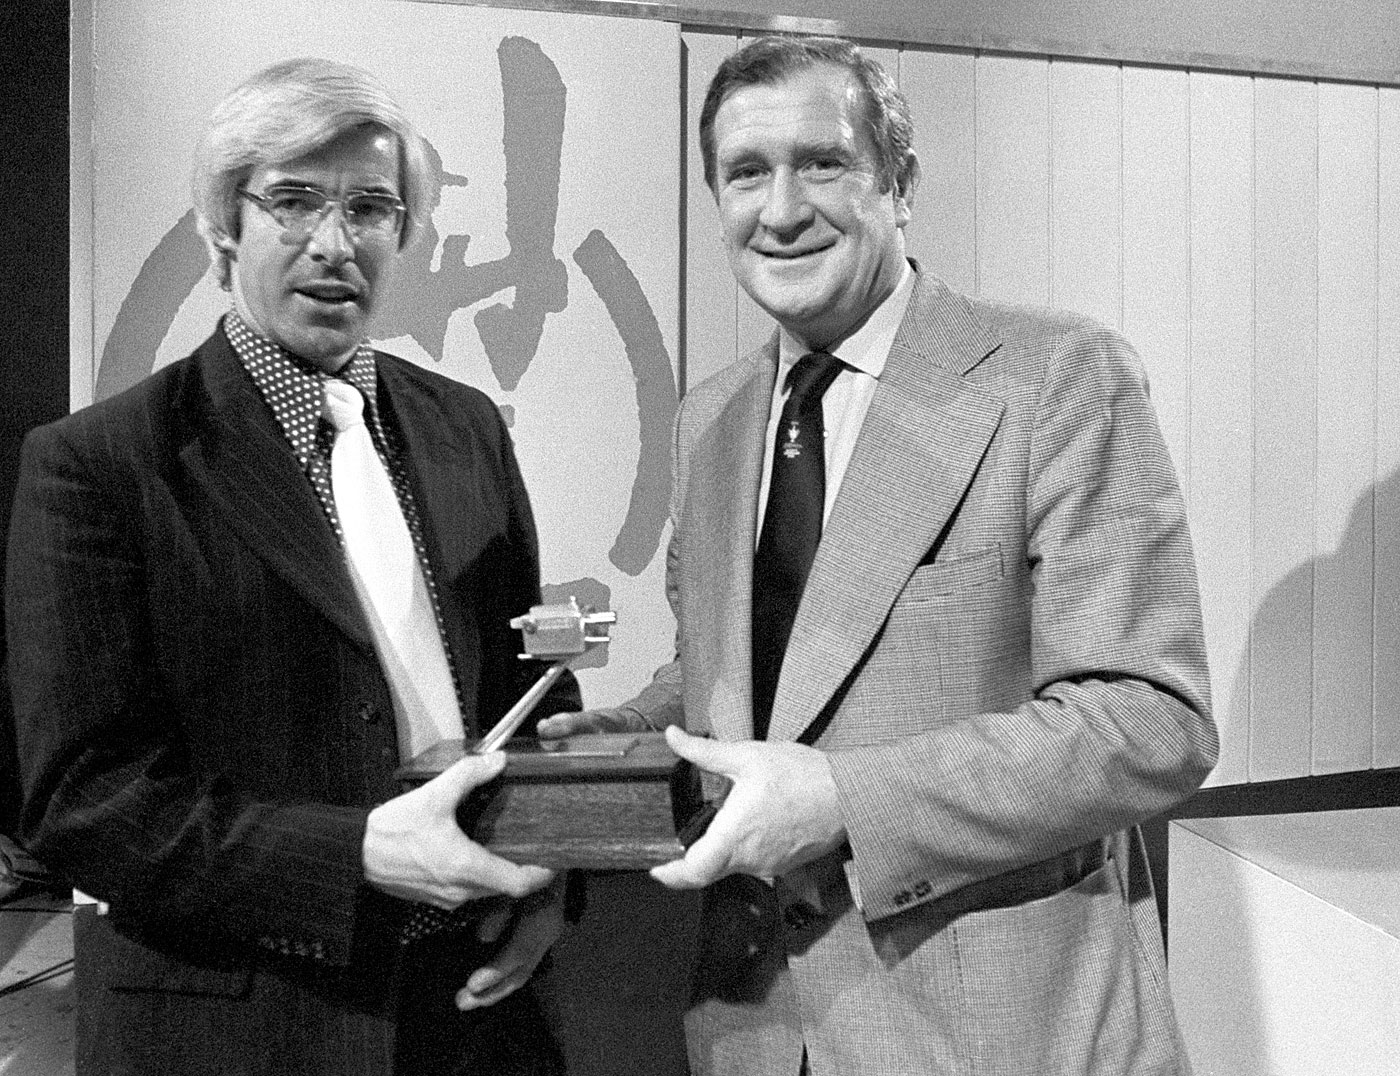 Receiving the BBC TV Grandstand Cricketer of the Year award from Jim Laker in 1975